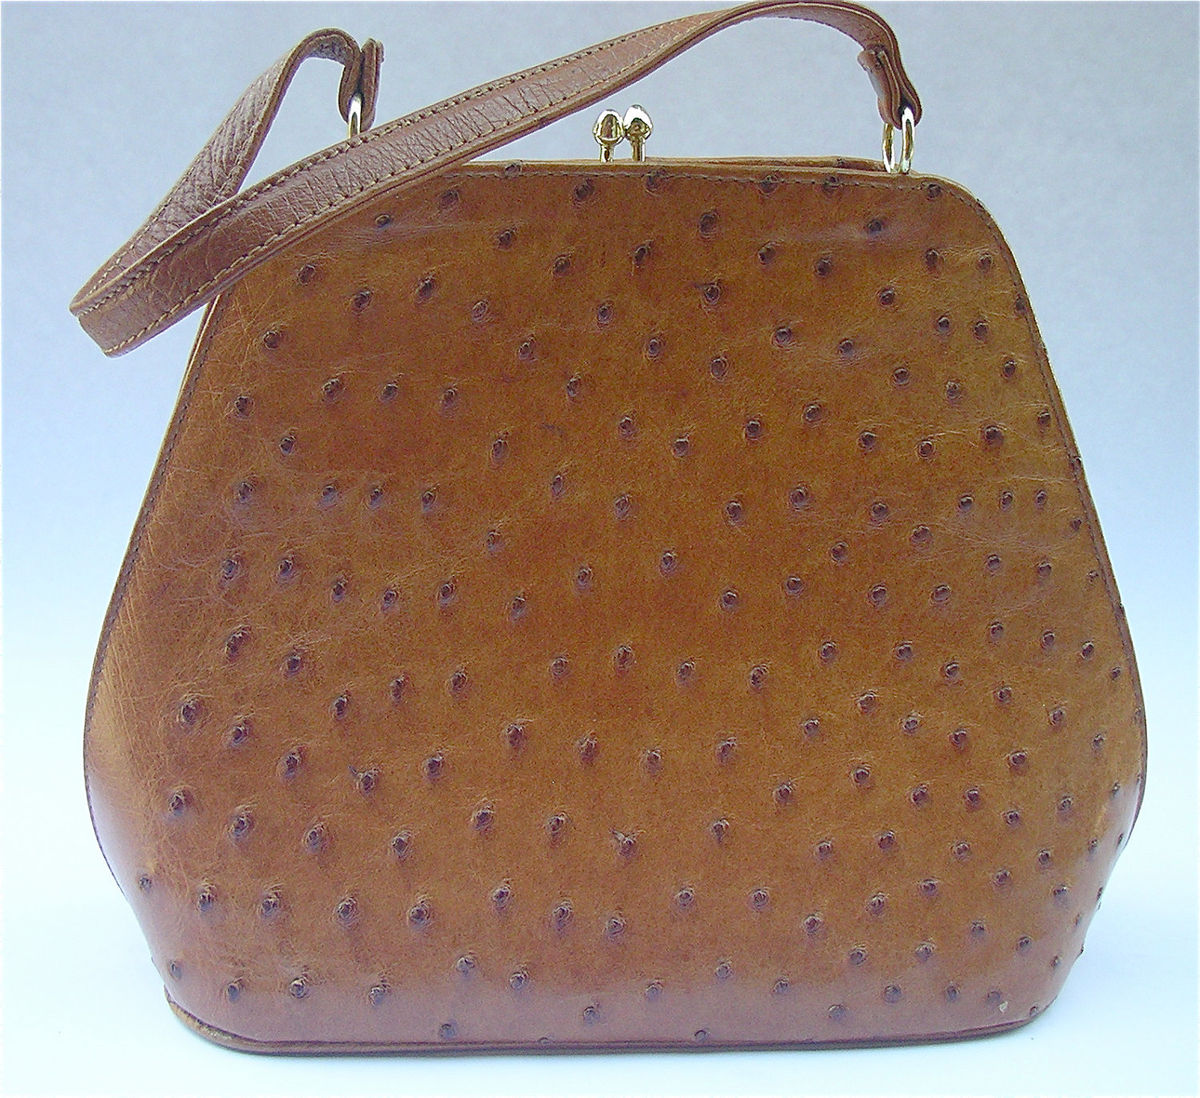 Vintage Ostrich Handbag Retro Tan Handbag Genuine Ostrich Kelly Handbag Structured Handbag Hard Side Purse Vintage Burnt Orange Leather Bag - product images  of